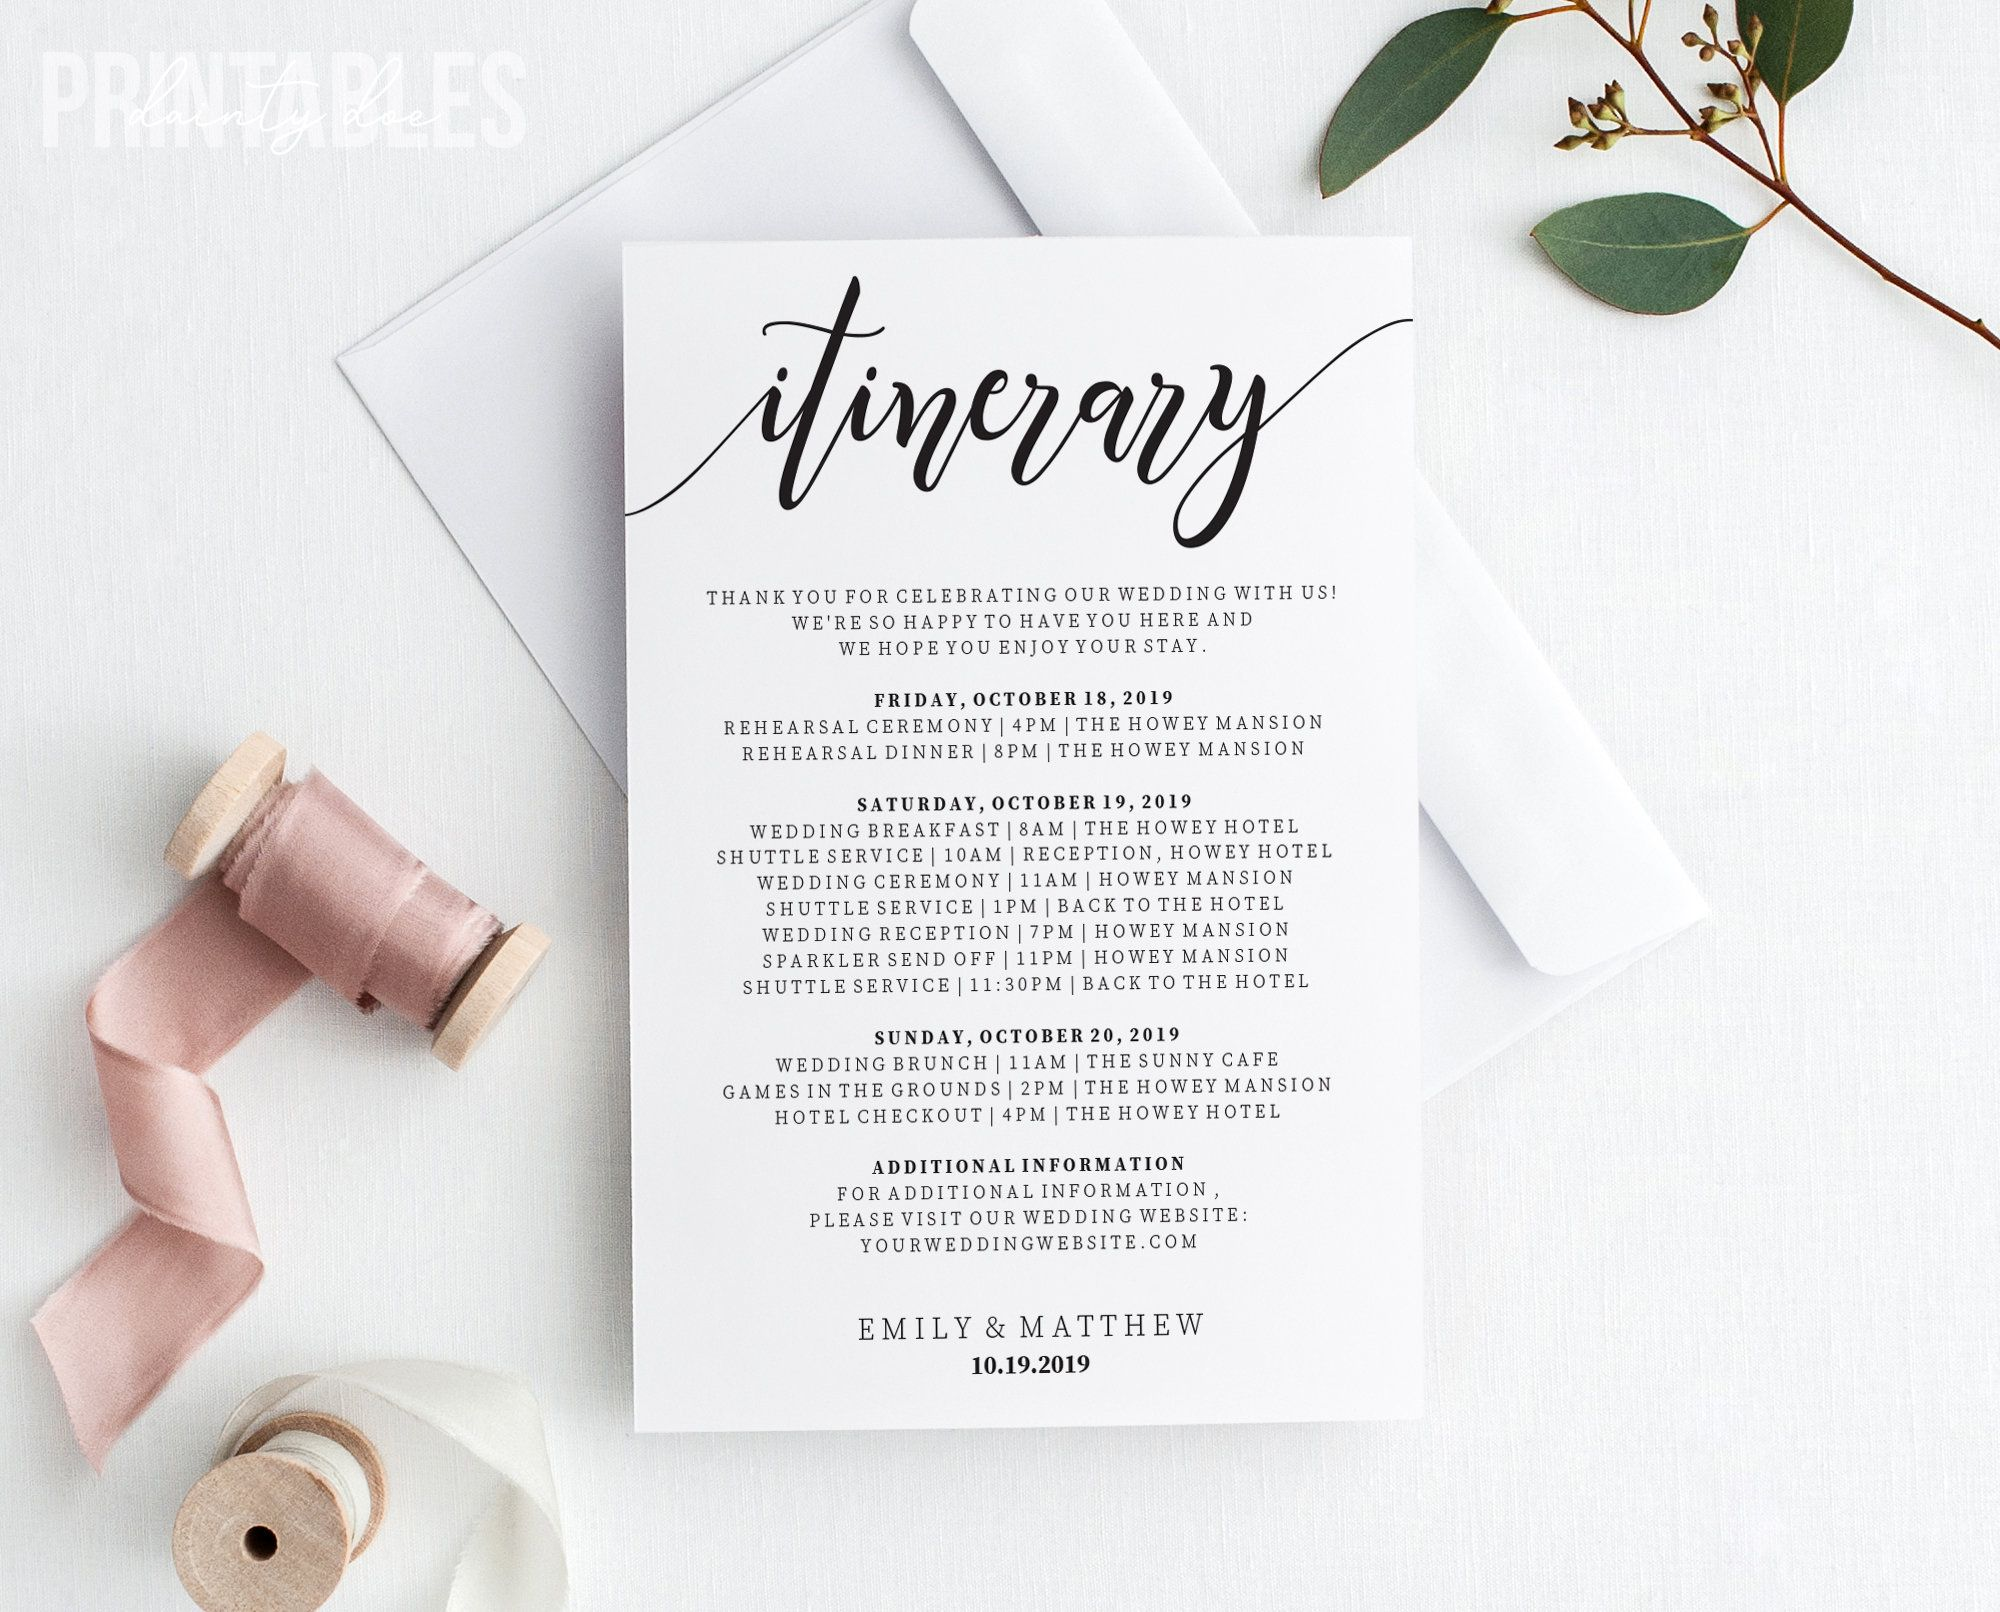 Editable Wedding Itinerary Welcome Bag Timeline Template Etsy Wedding Details Card Wedding Details Wedding Itinerary